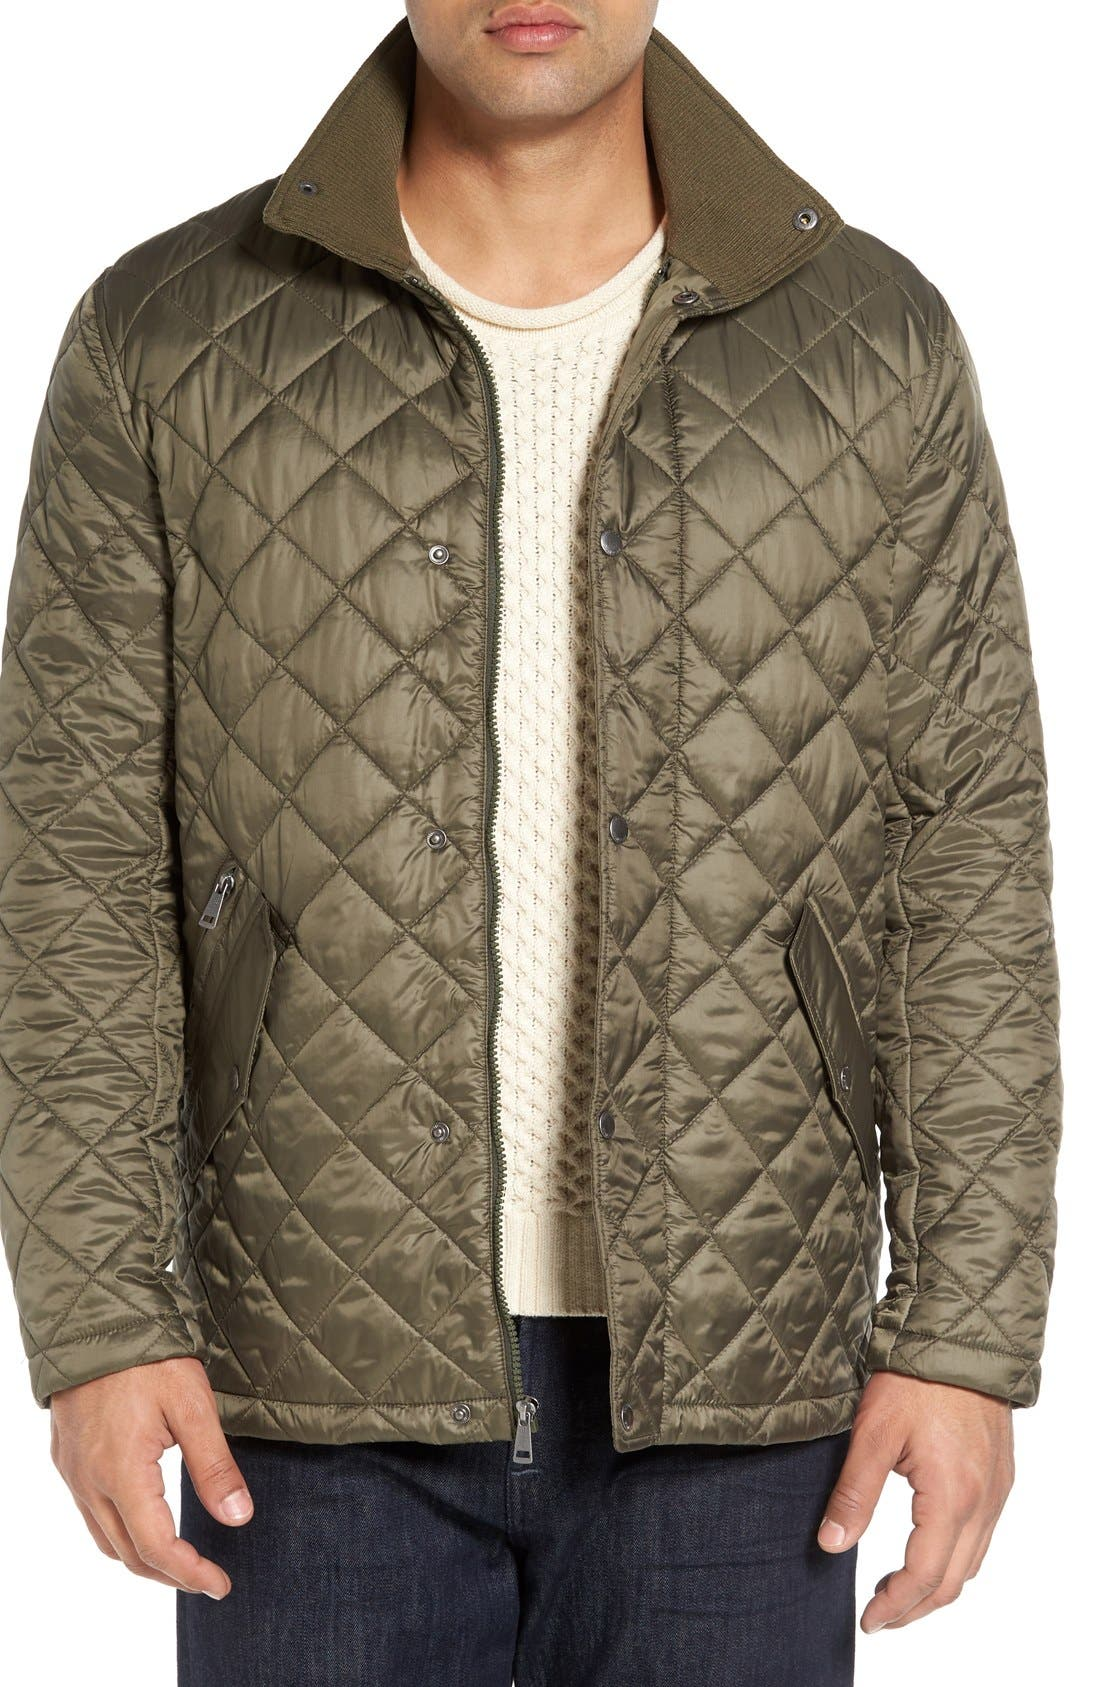 Diamond Quilted Jacket,                             Main thumbnail 1, color,                             Olive